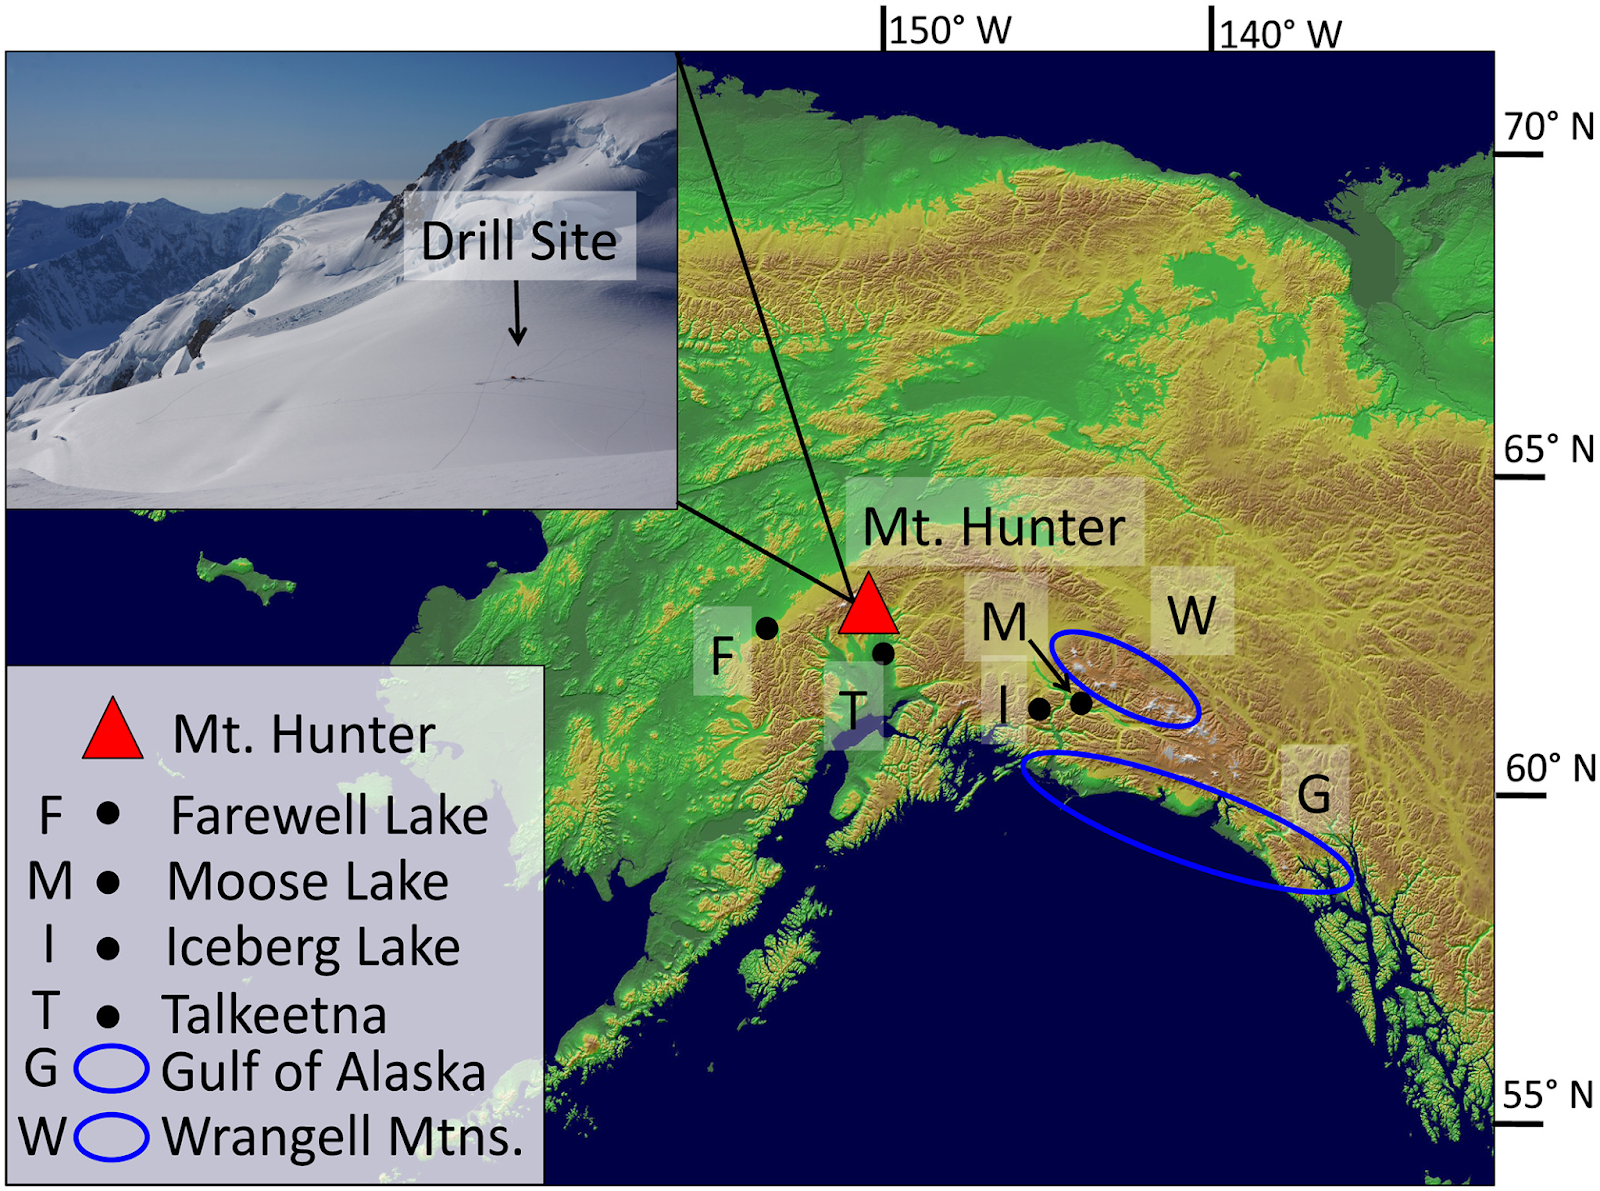 location of the mt hunter ice core red triangle in the alaska range alaska black circles indicate the locations of other temperature records discussed